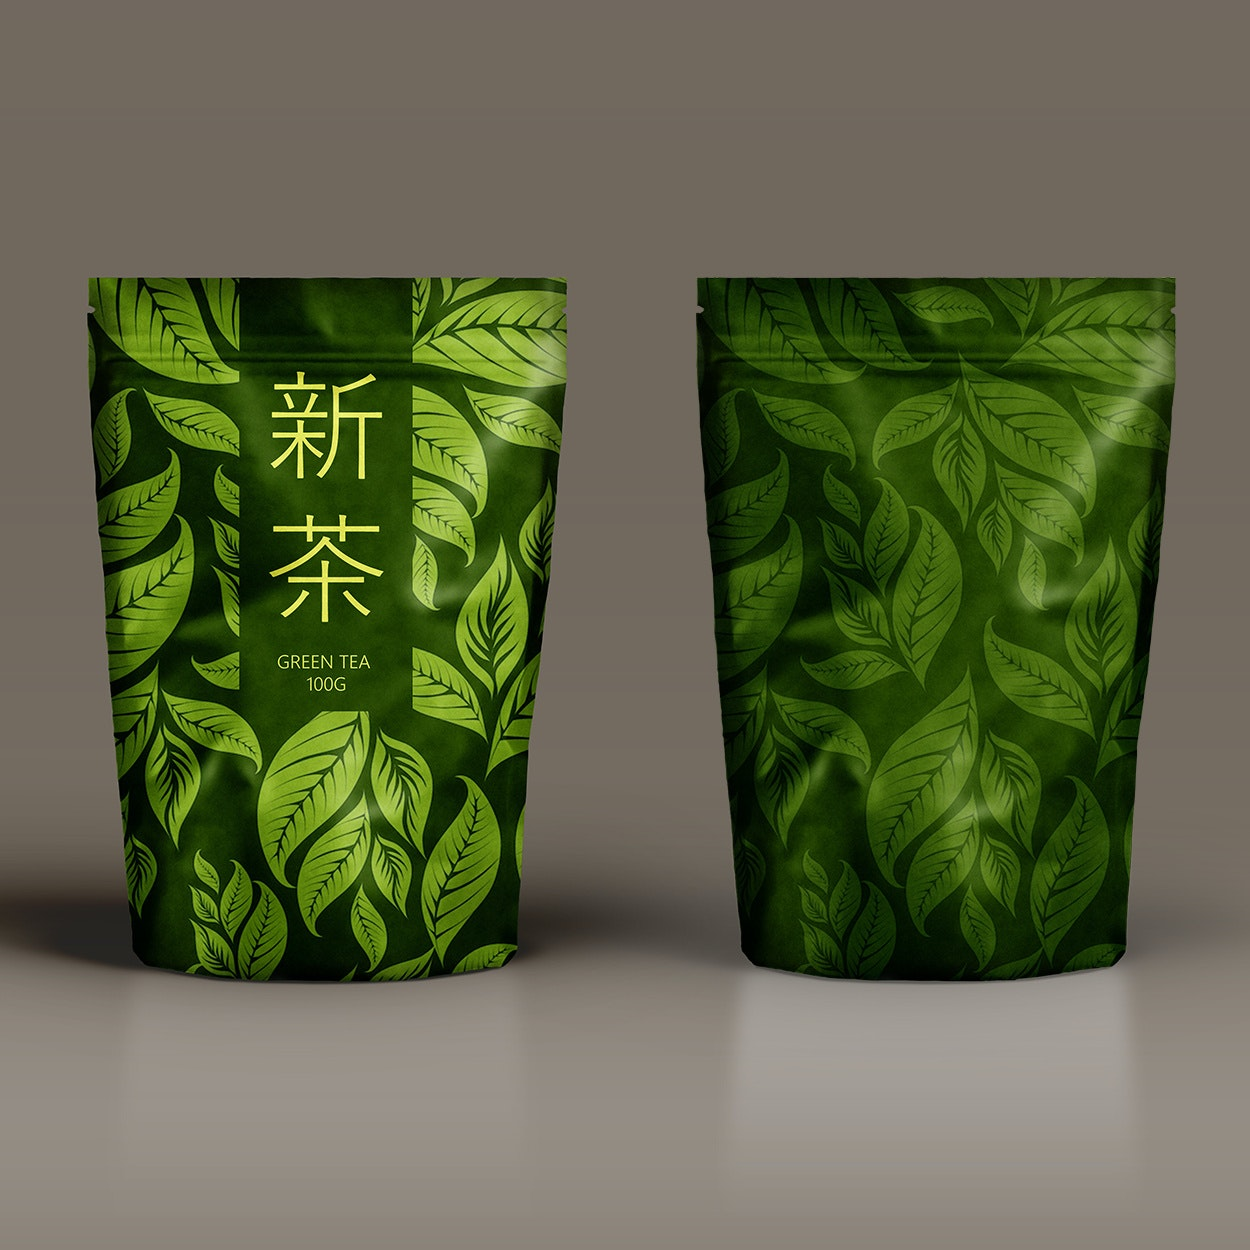 Japanese SHINCHA bag design